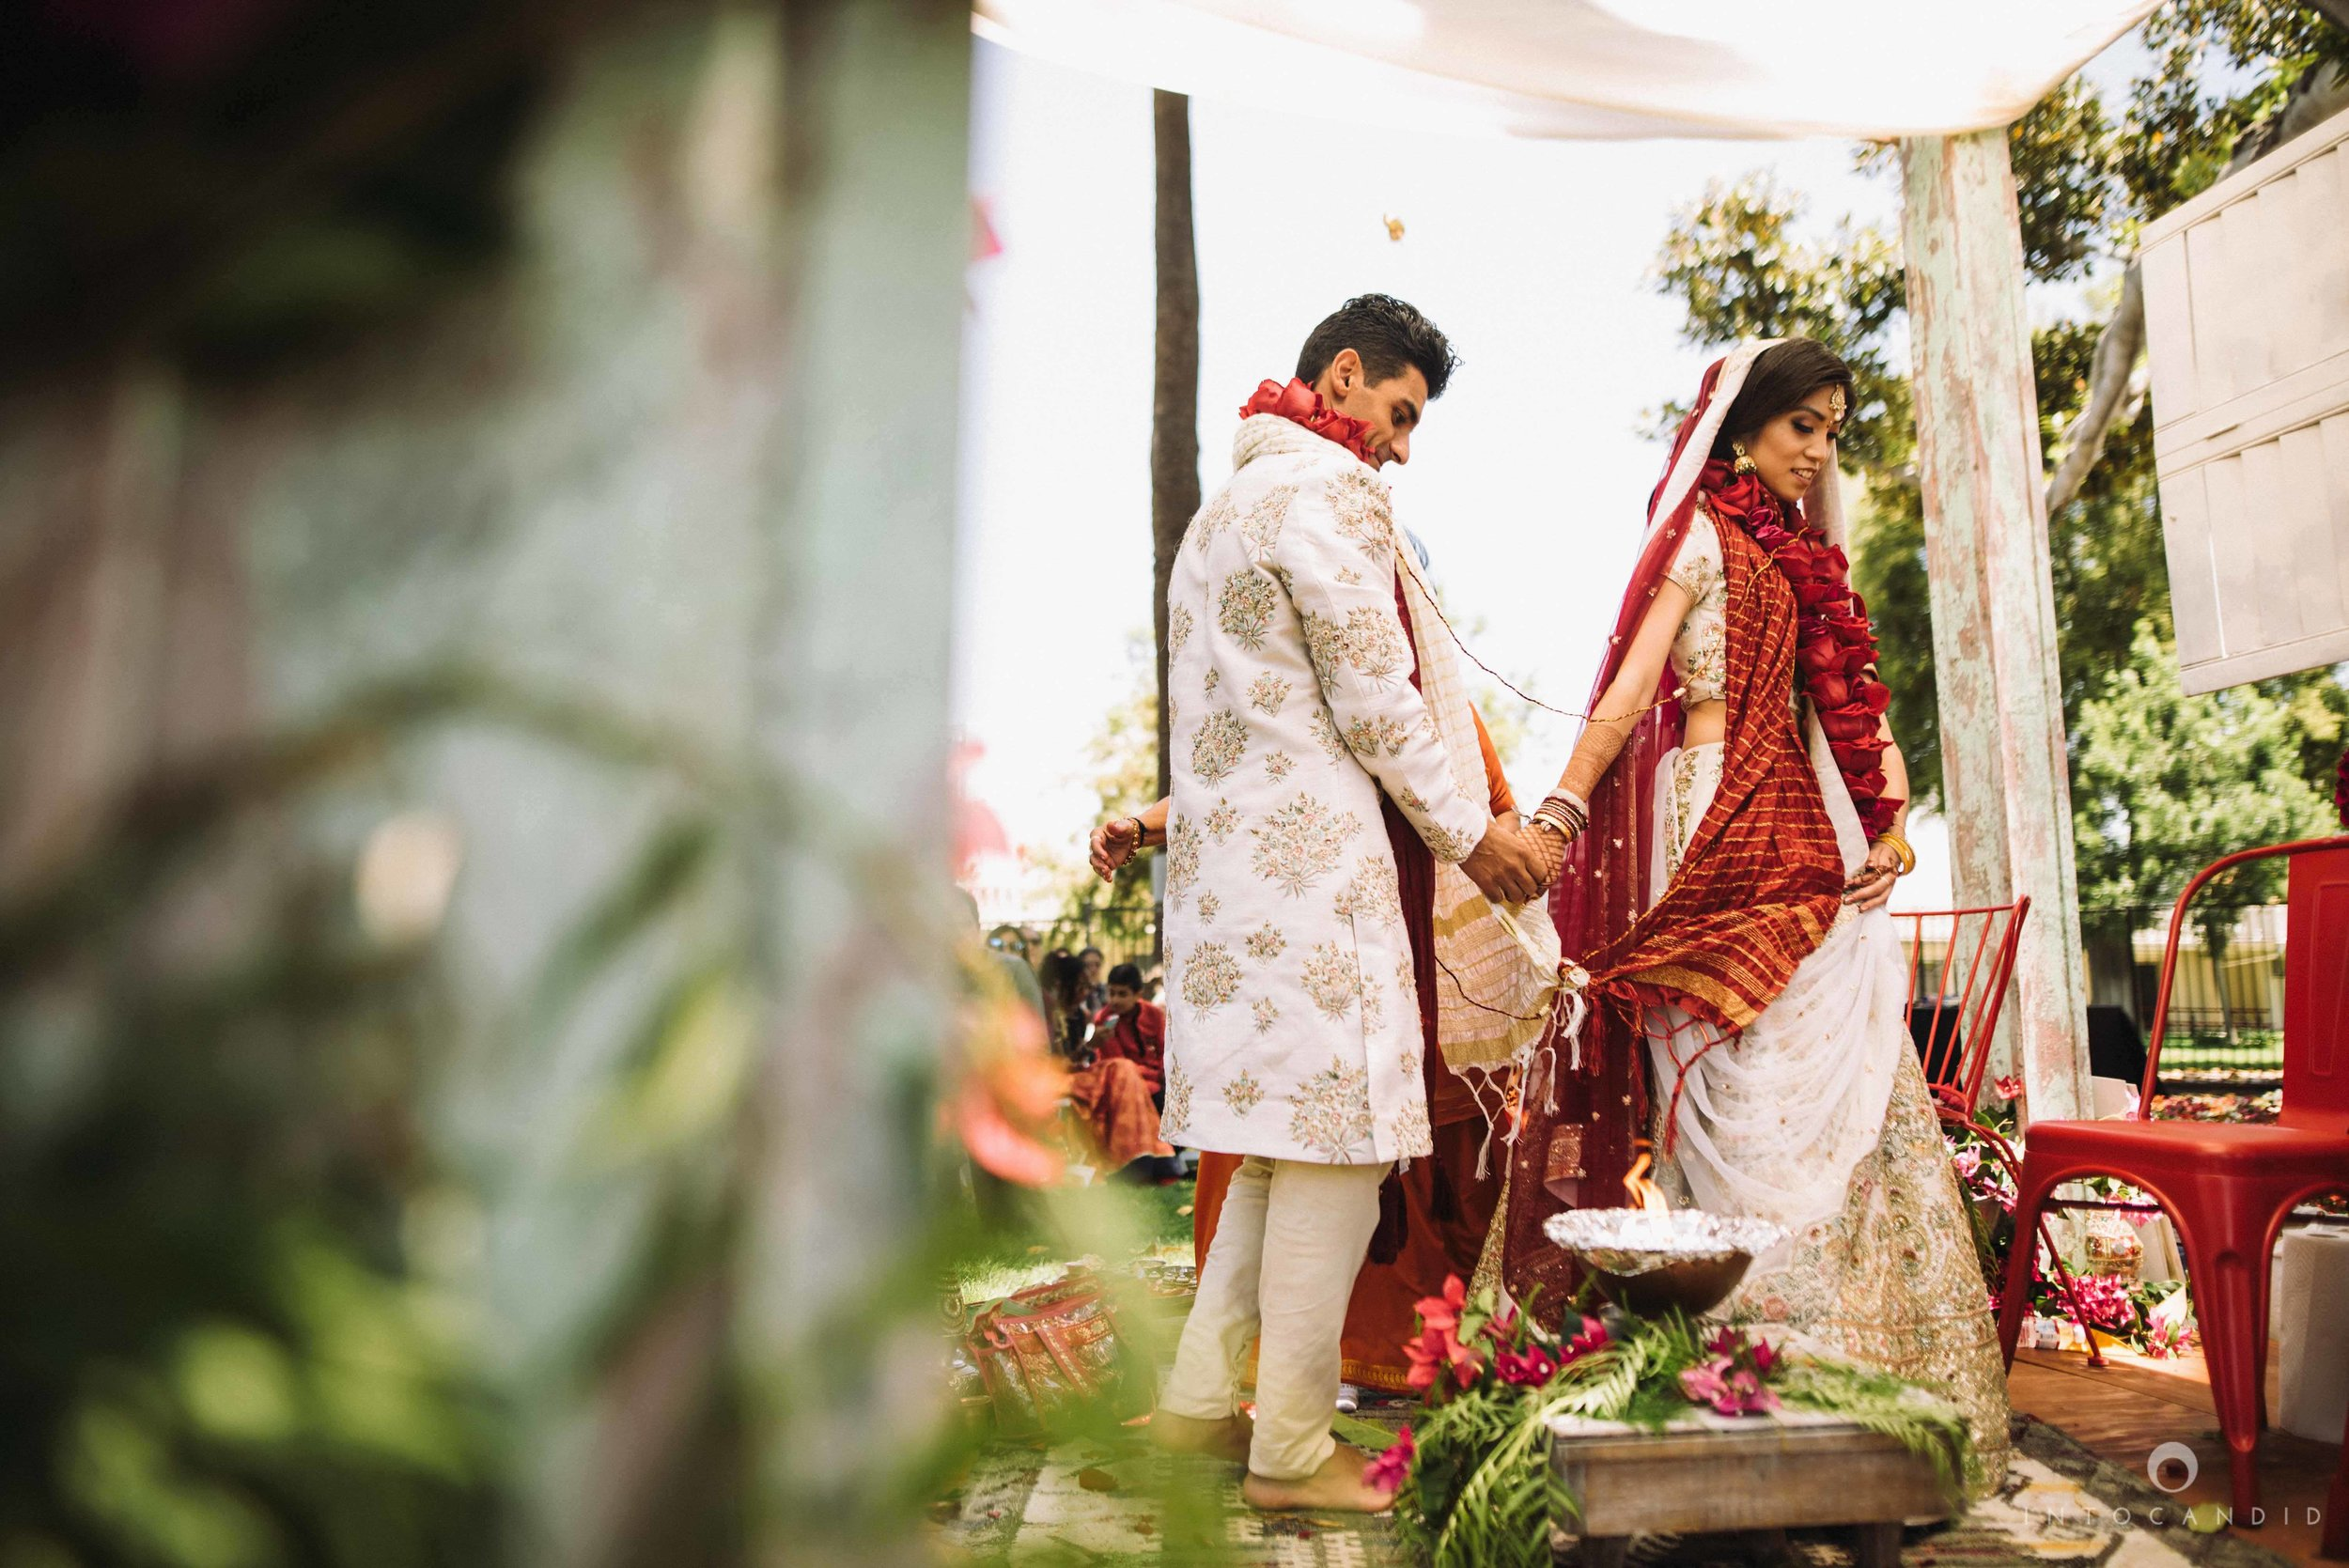 LosAngeles_Indian_Wedding_Photographer_AS_105.jpg